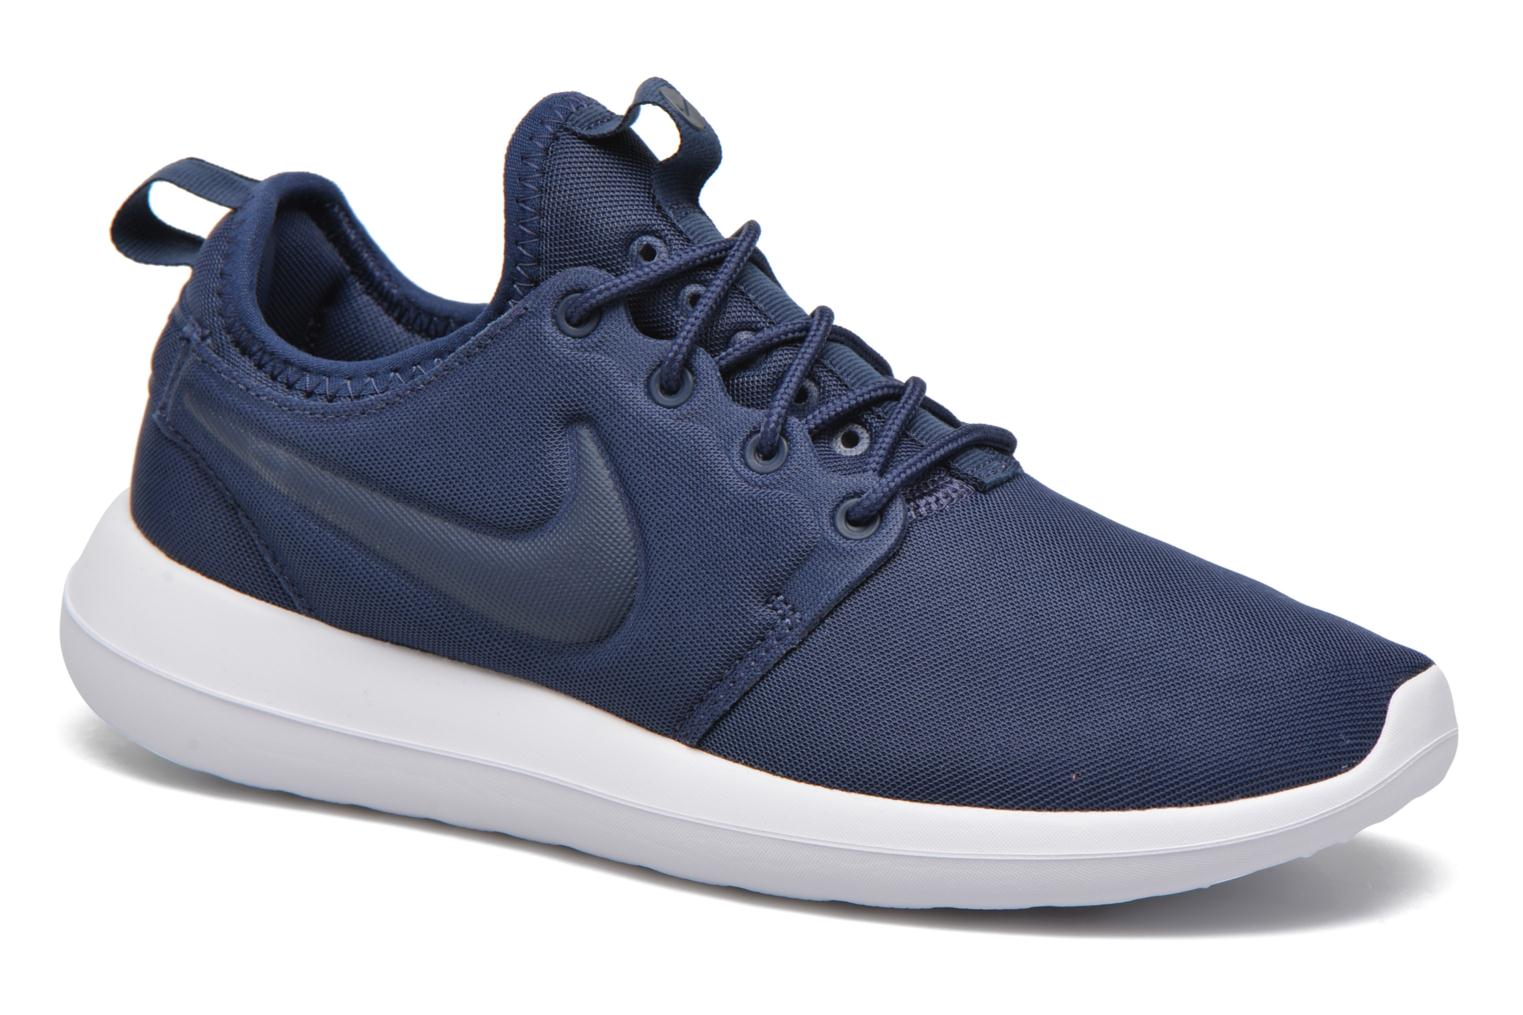 3382dcc73c802 Where To Buy How to remove paint from nike roshe one How To Buy